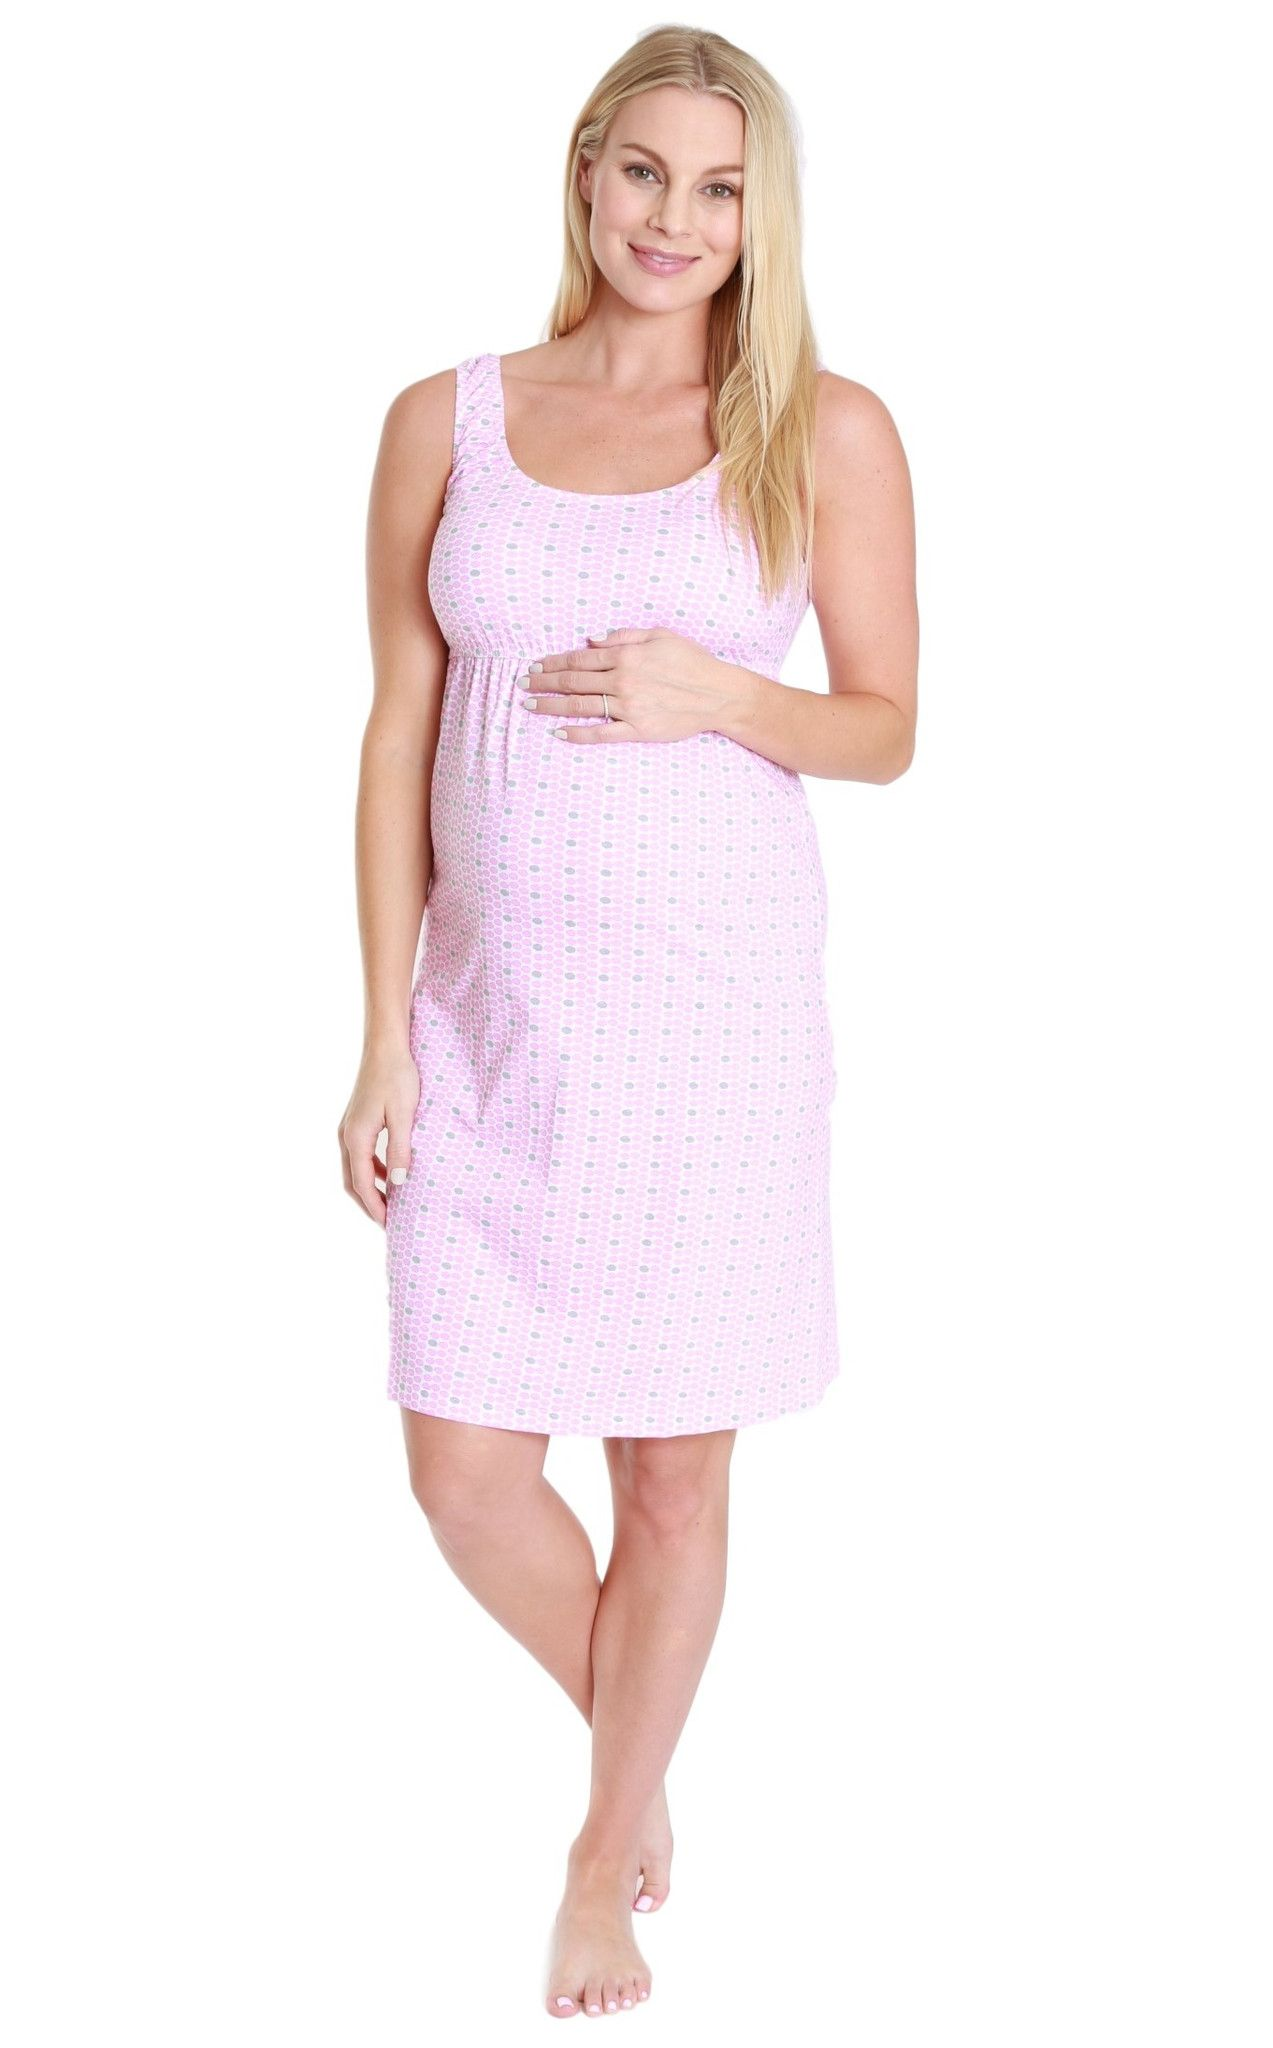 Chloe Maternity/Nursing Sleeveless Nightgown | Nightgown and Bump